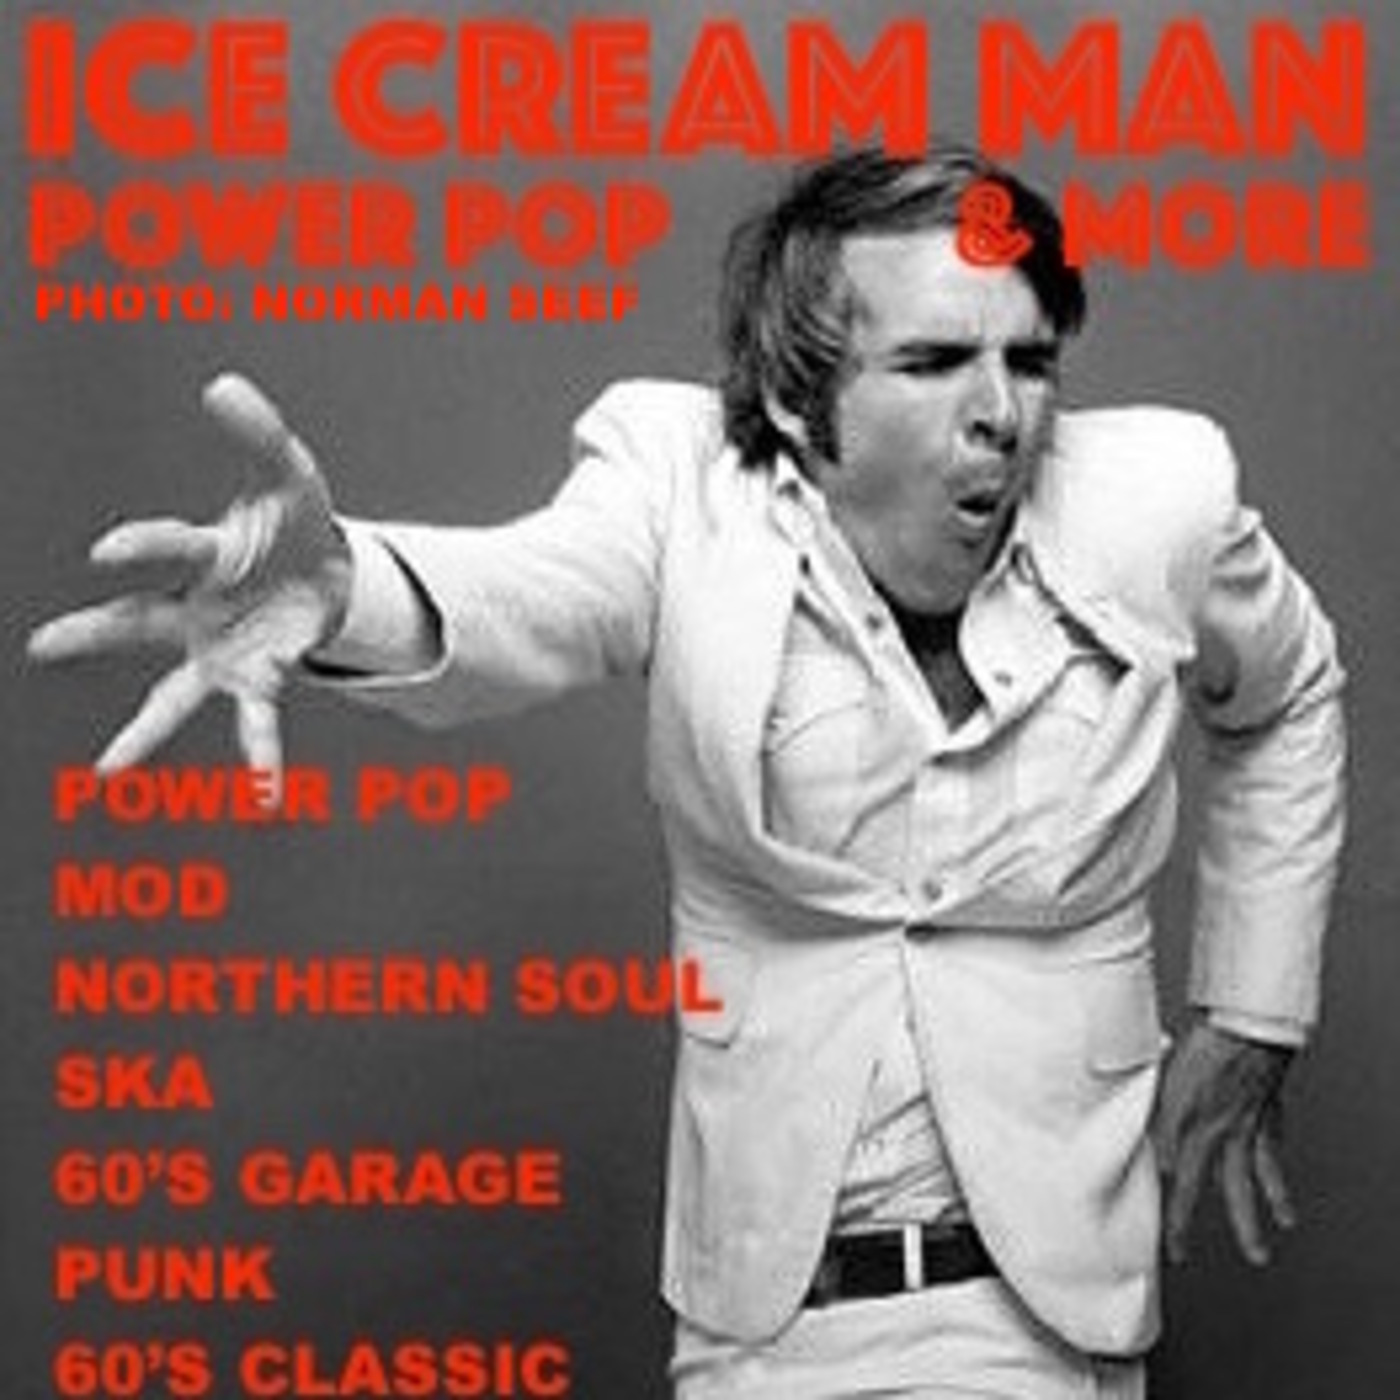 Ice Cream Man Power Pop And More #190 (The eclectic one!)